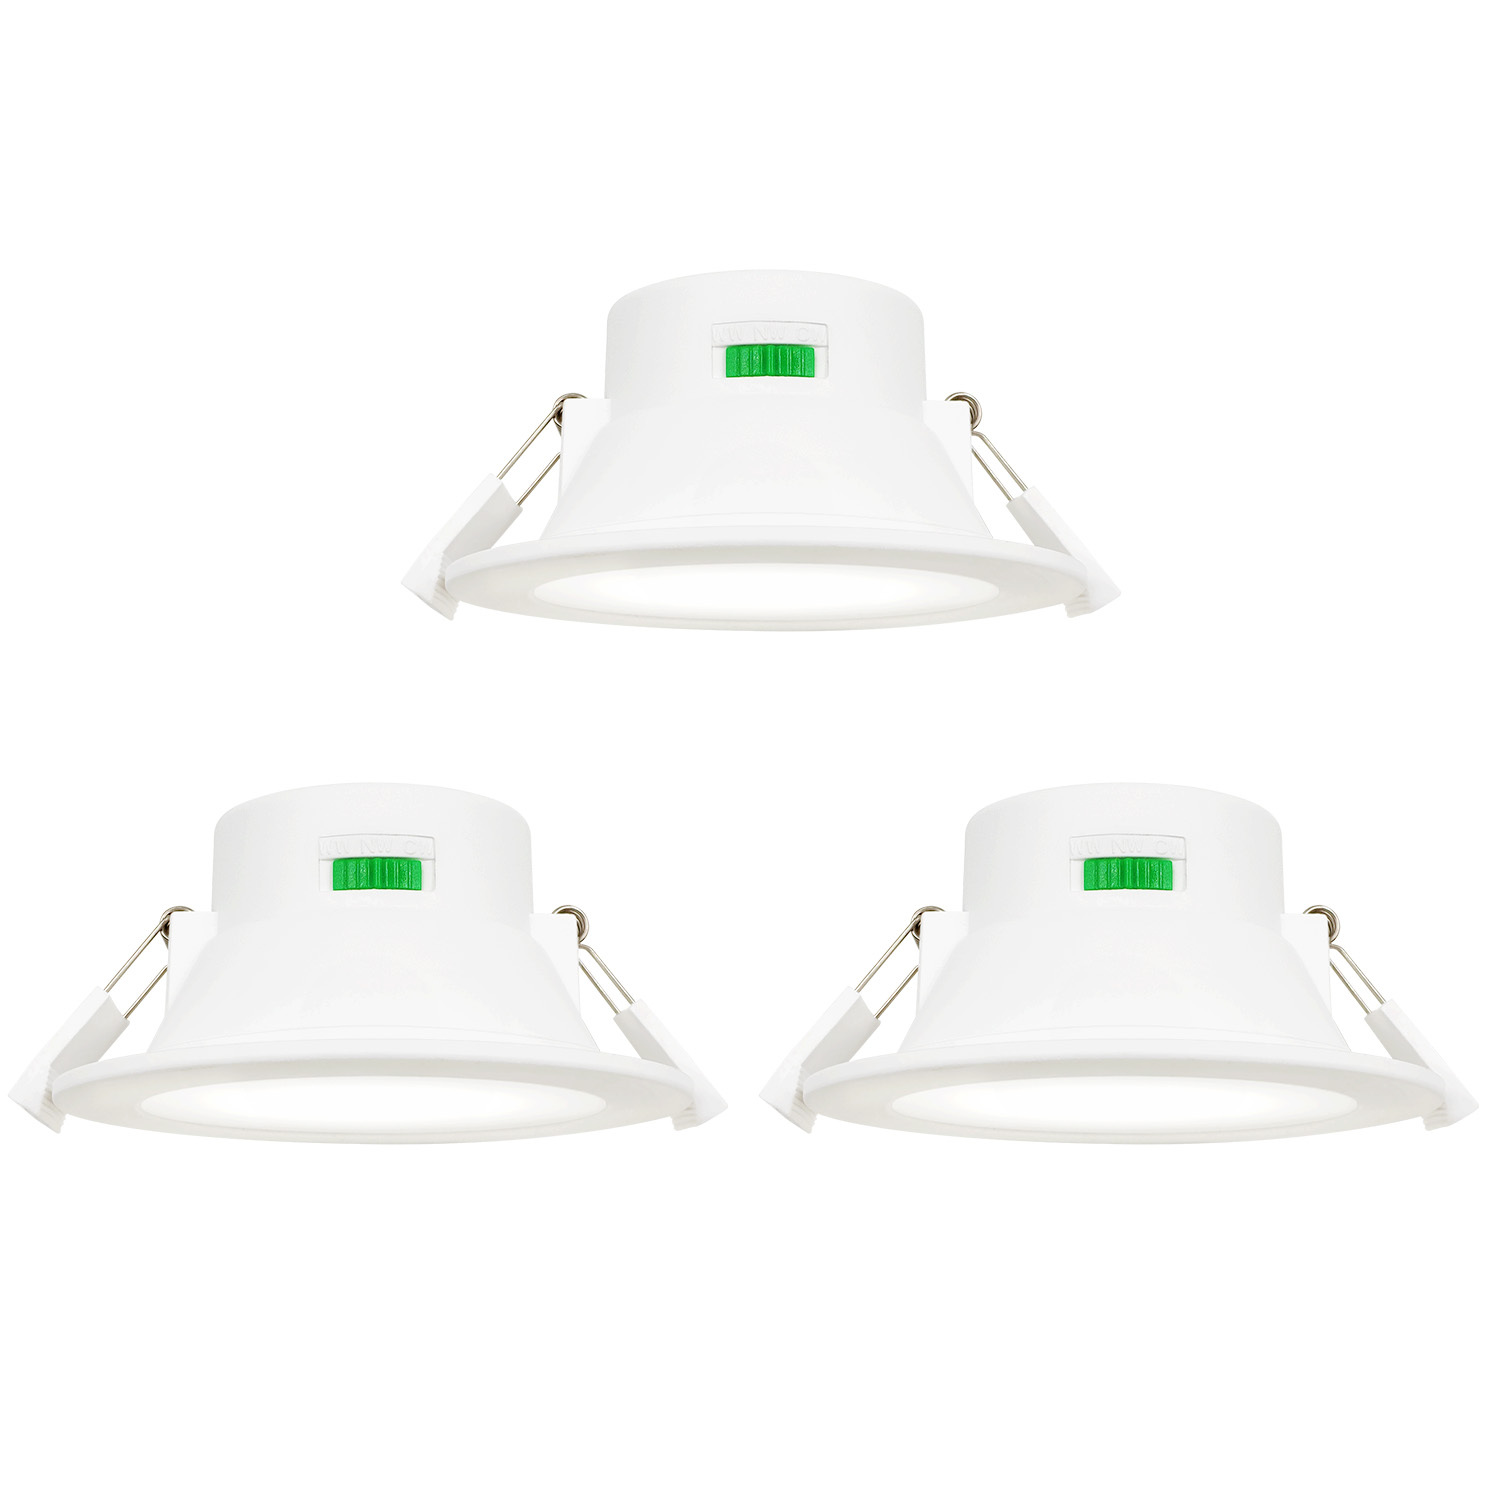 Dimmable 10w Led Ceiling Downlights Recessed Lights Warm